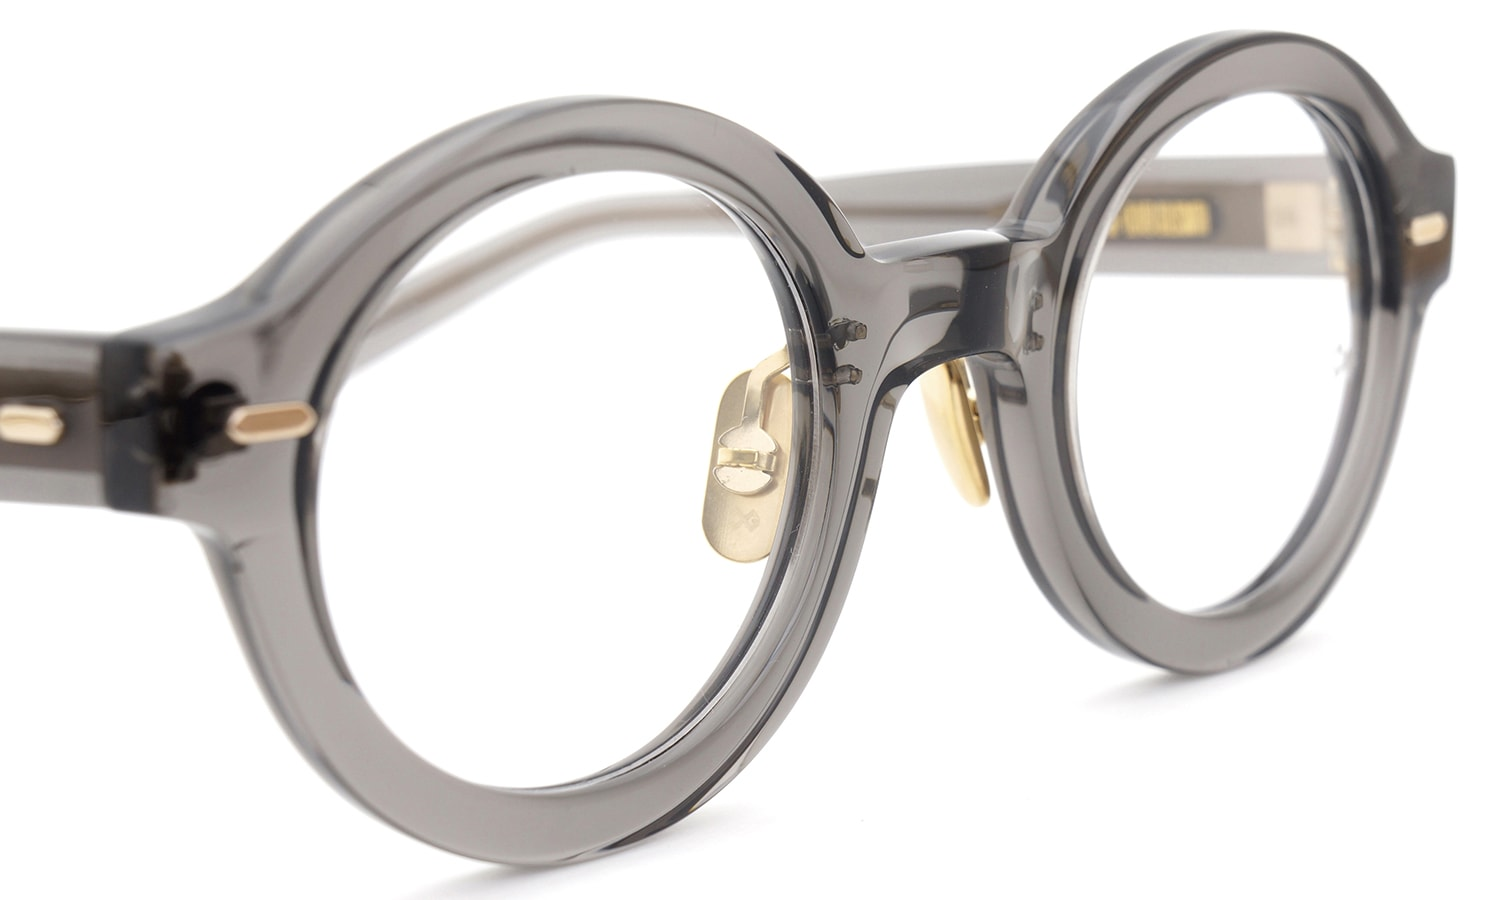 OG × OLIVER GOLDSMITH Re:SHEPPERTON 45 リ:シェパートン 6